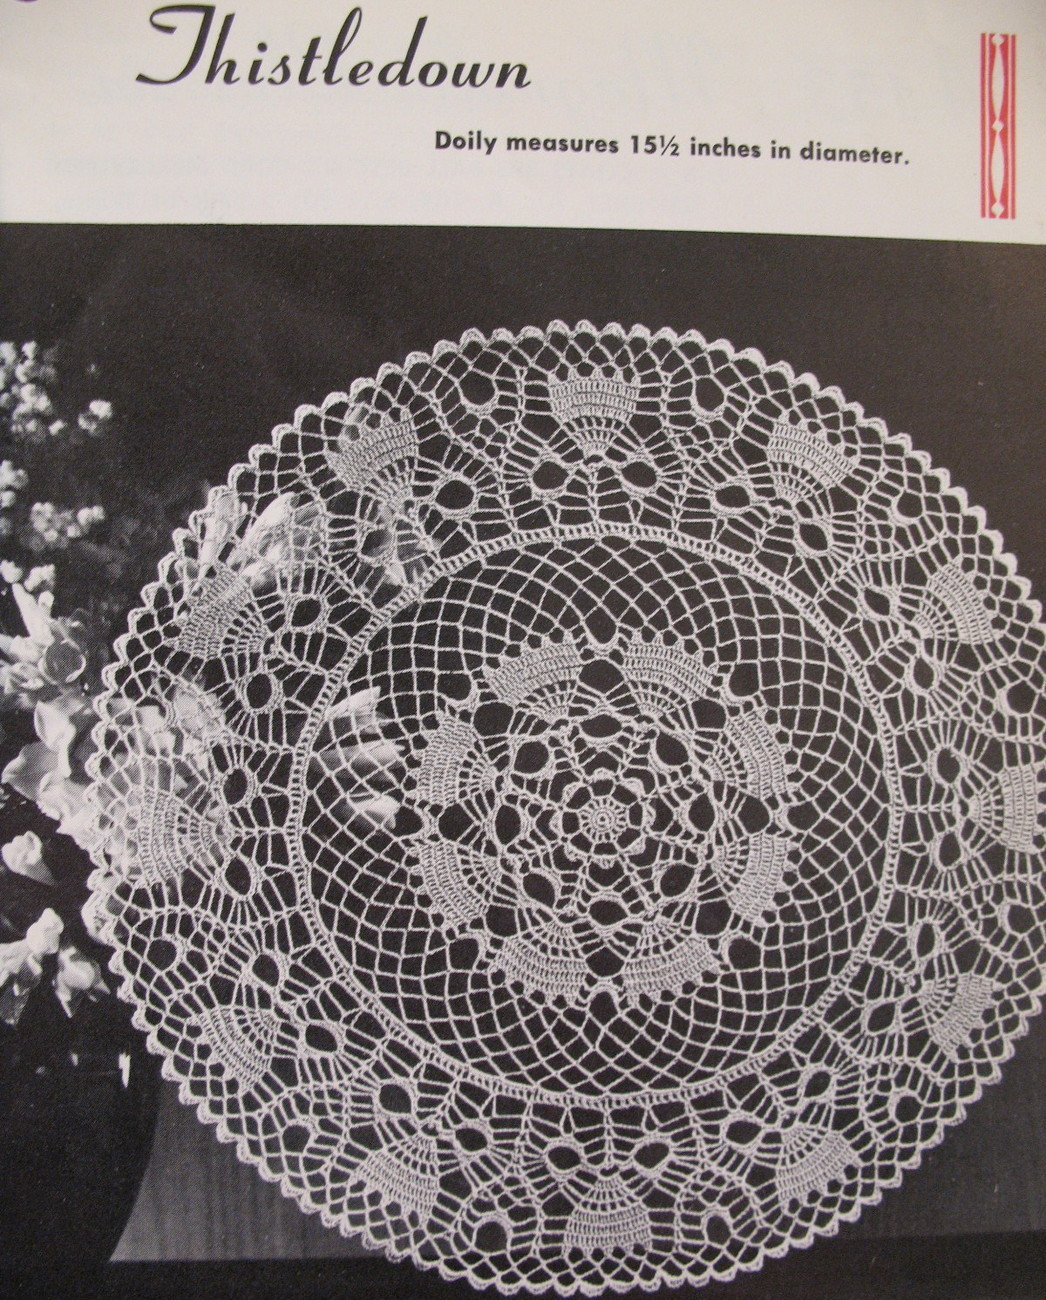 Vintage Doilies New Vintage Doilies Doily Crochet Knit Tat Pattern Booklet Of Superb 47 Images Vintage Doilies